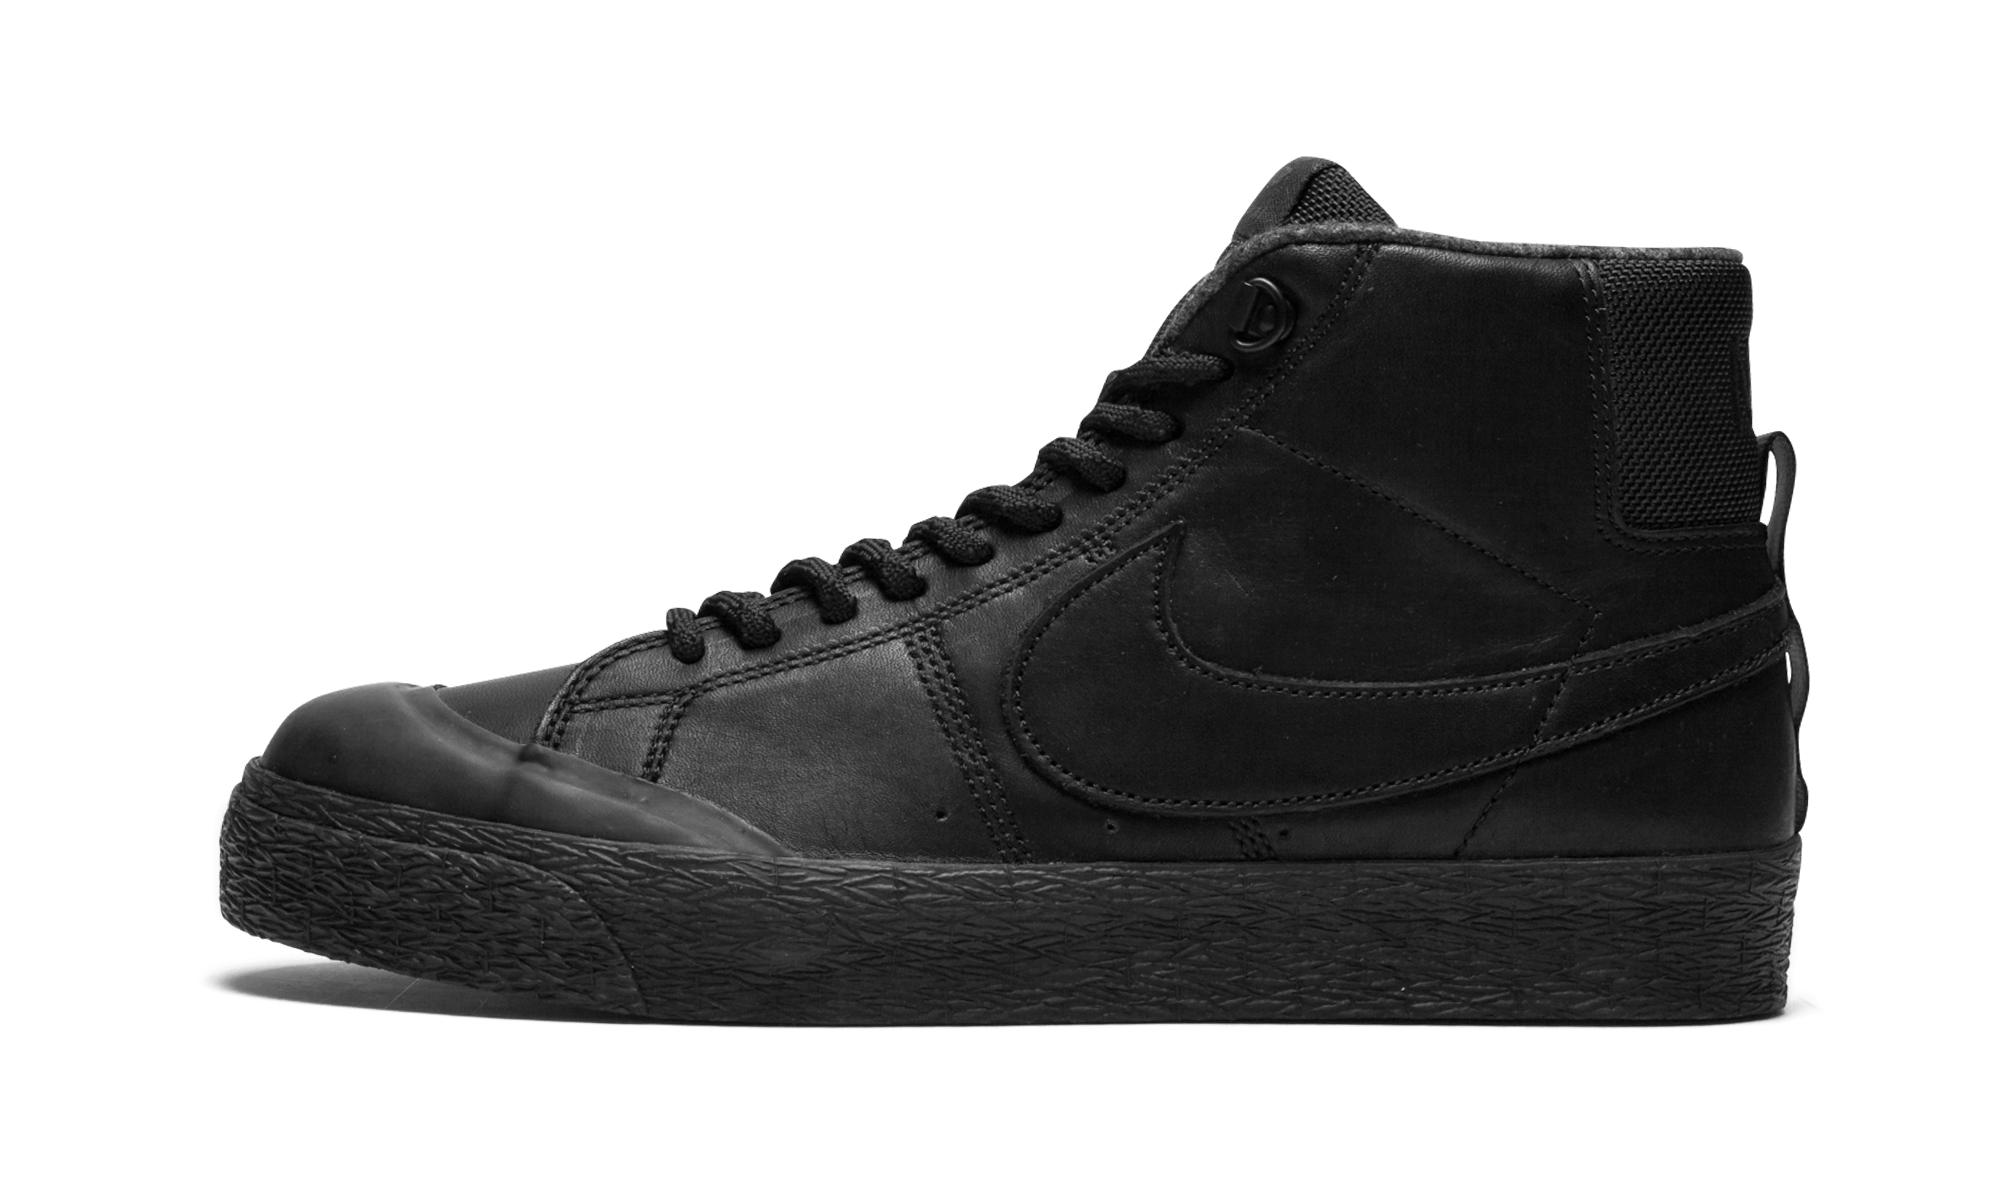 competitive price cb6c3 ccf2a Nike Black Sb Blazer Zoom Mens Xt Bota - Size 9.5 for men